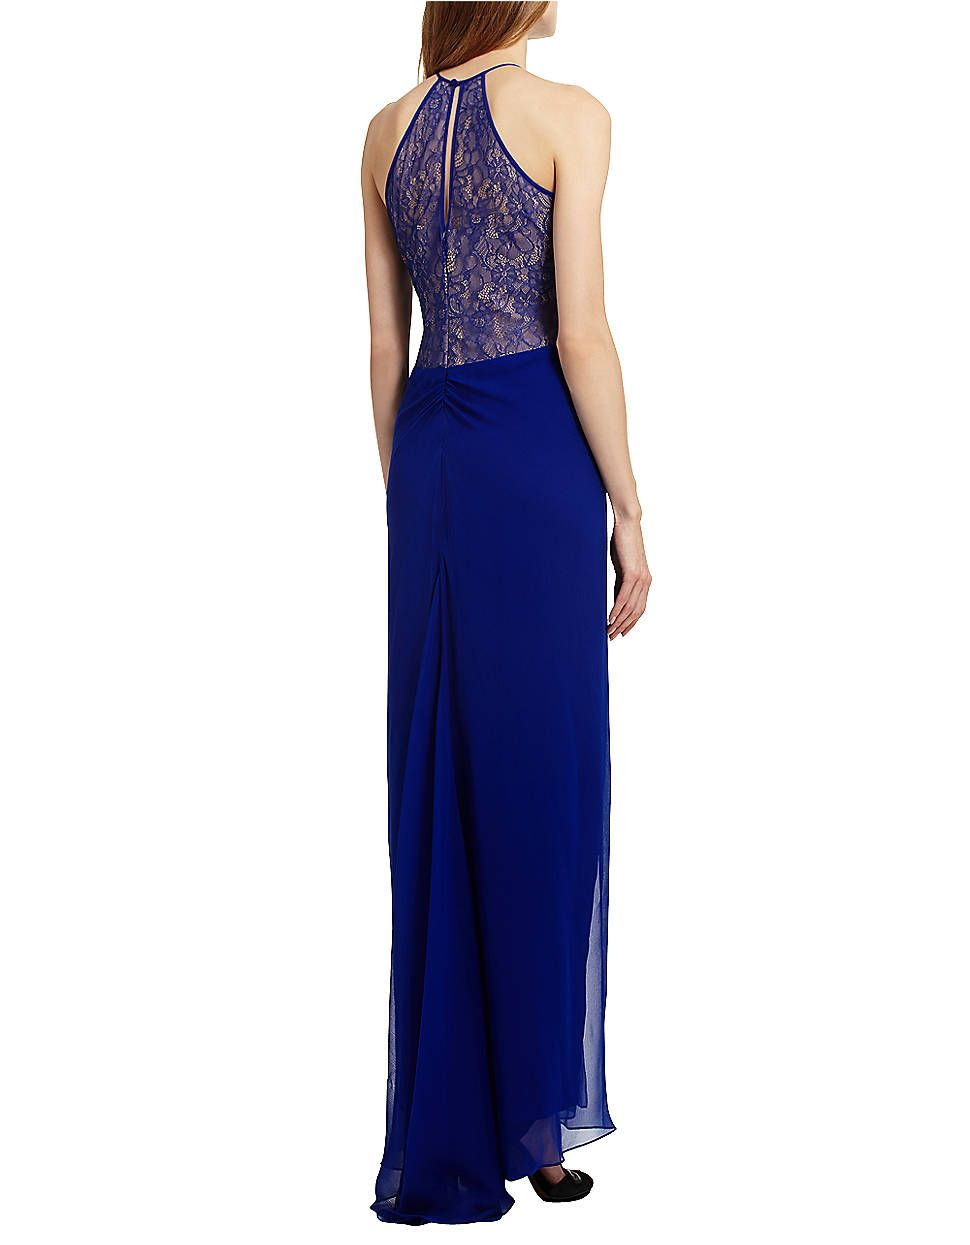 Maxine Evening Gown | Lord and Taylor | Fashion | Dresses ...